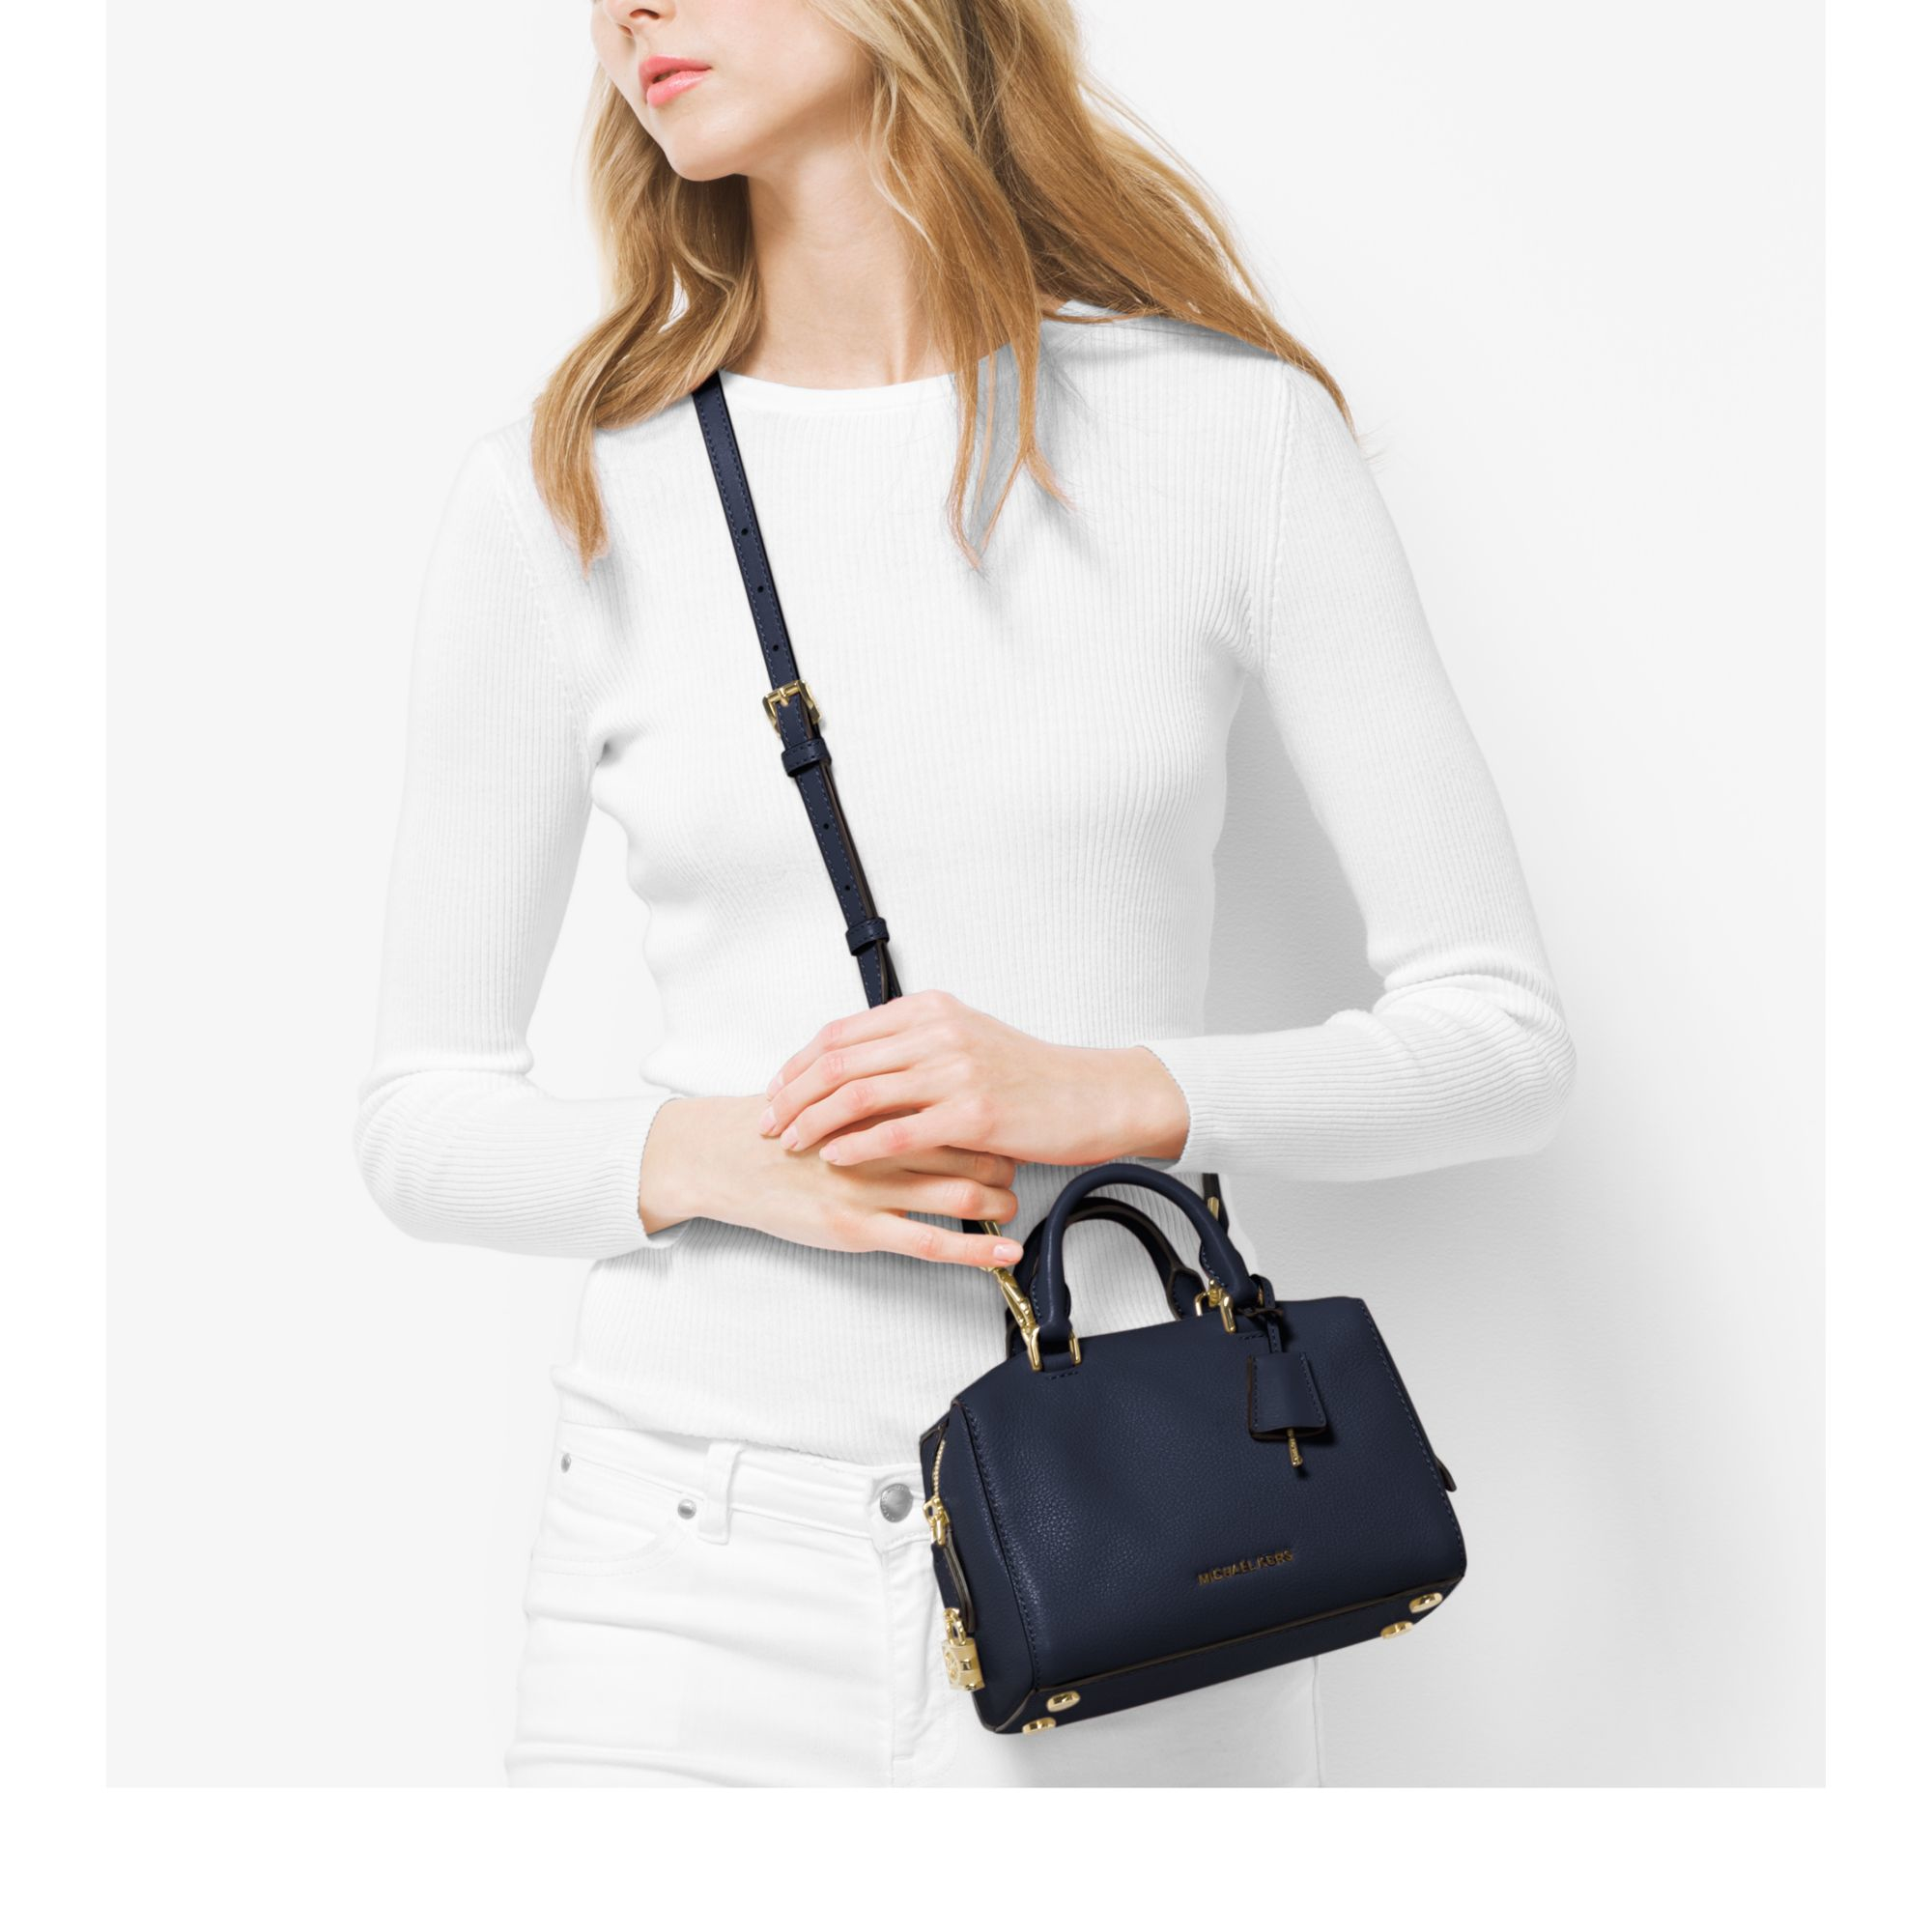 0b65f450a9 ... Lyst - Michael Kors Kirby Extra-small Leather Satchel in Blu ...